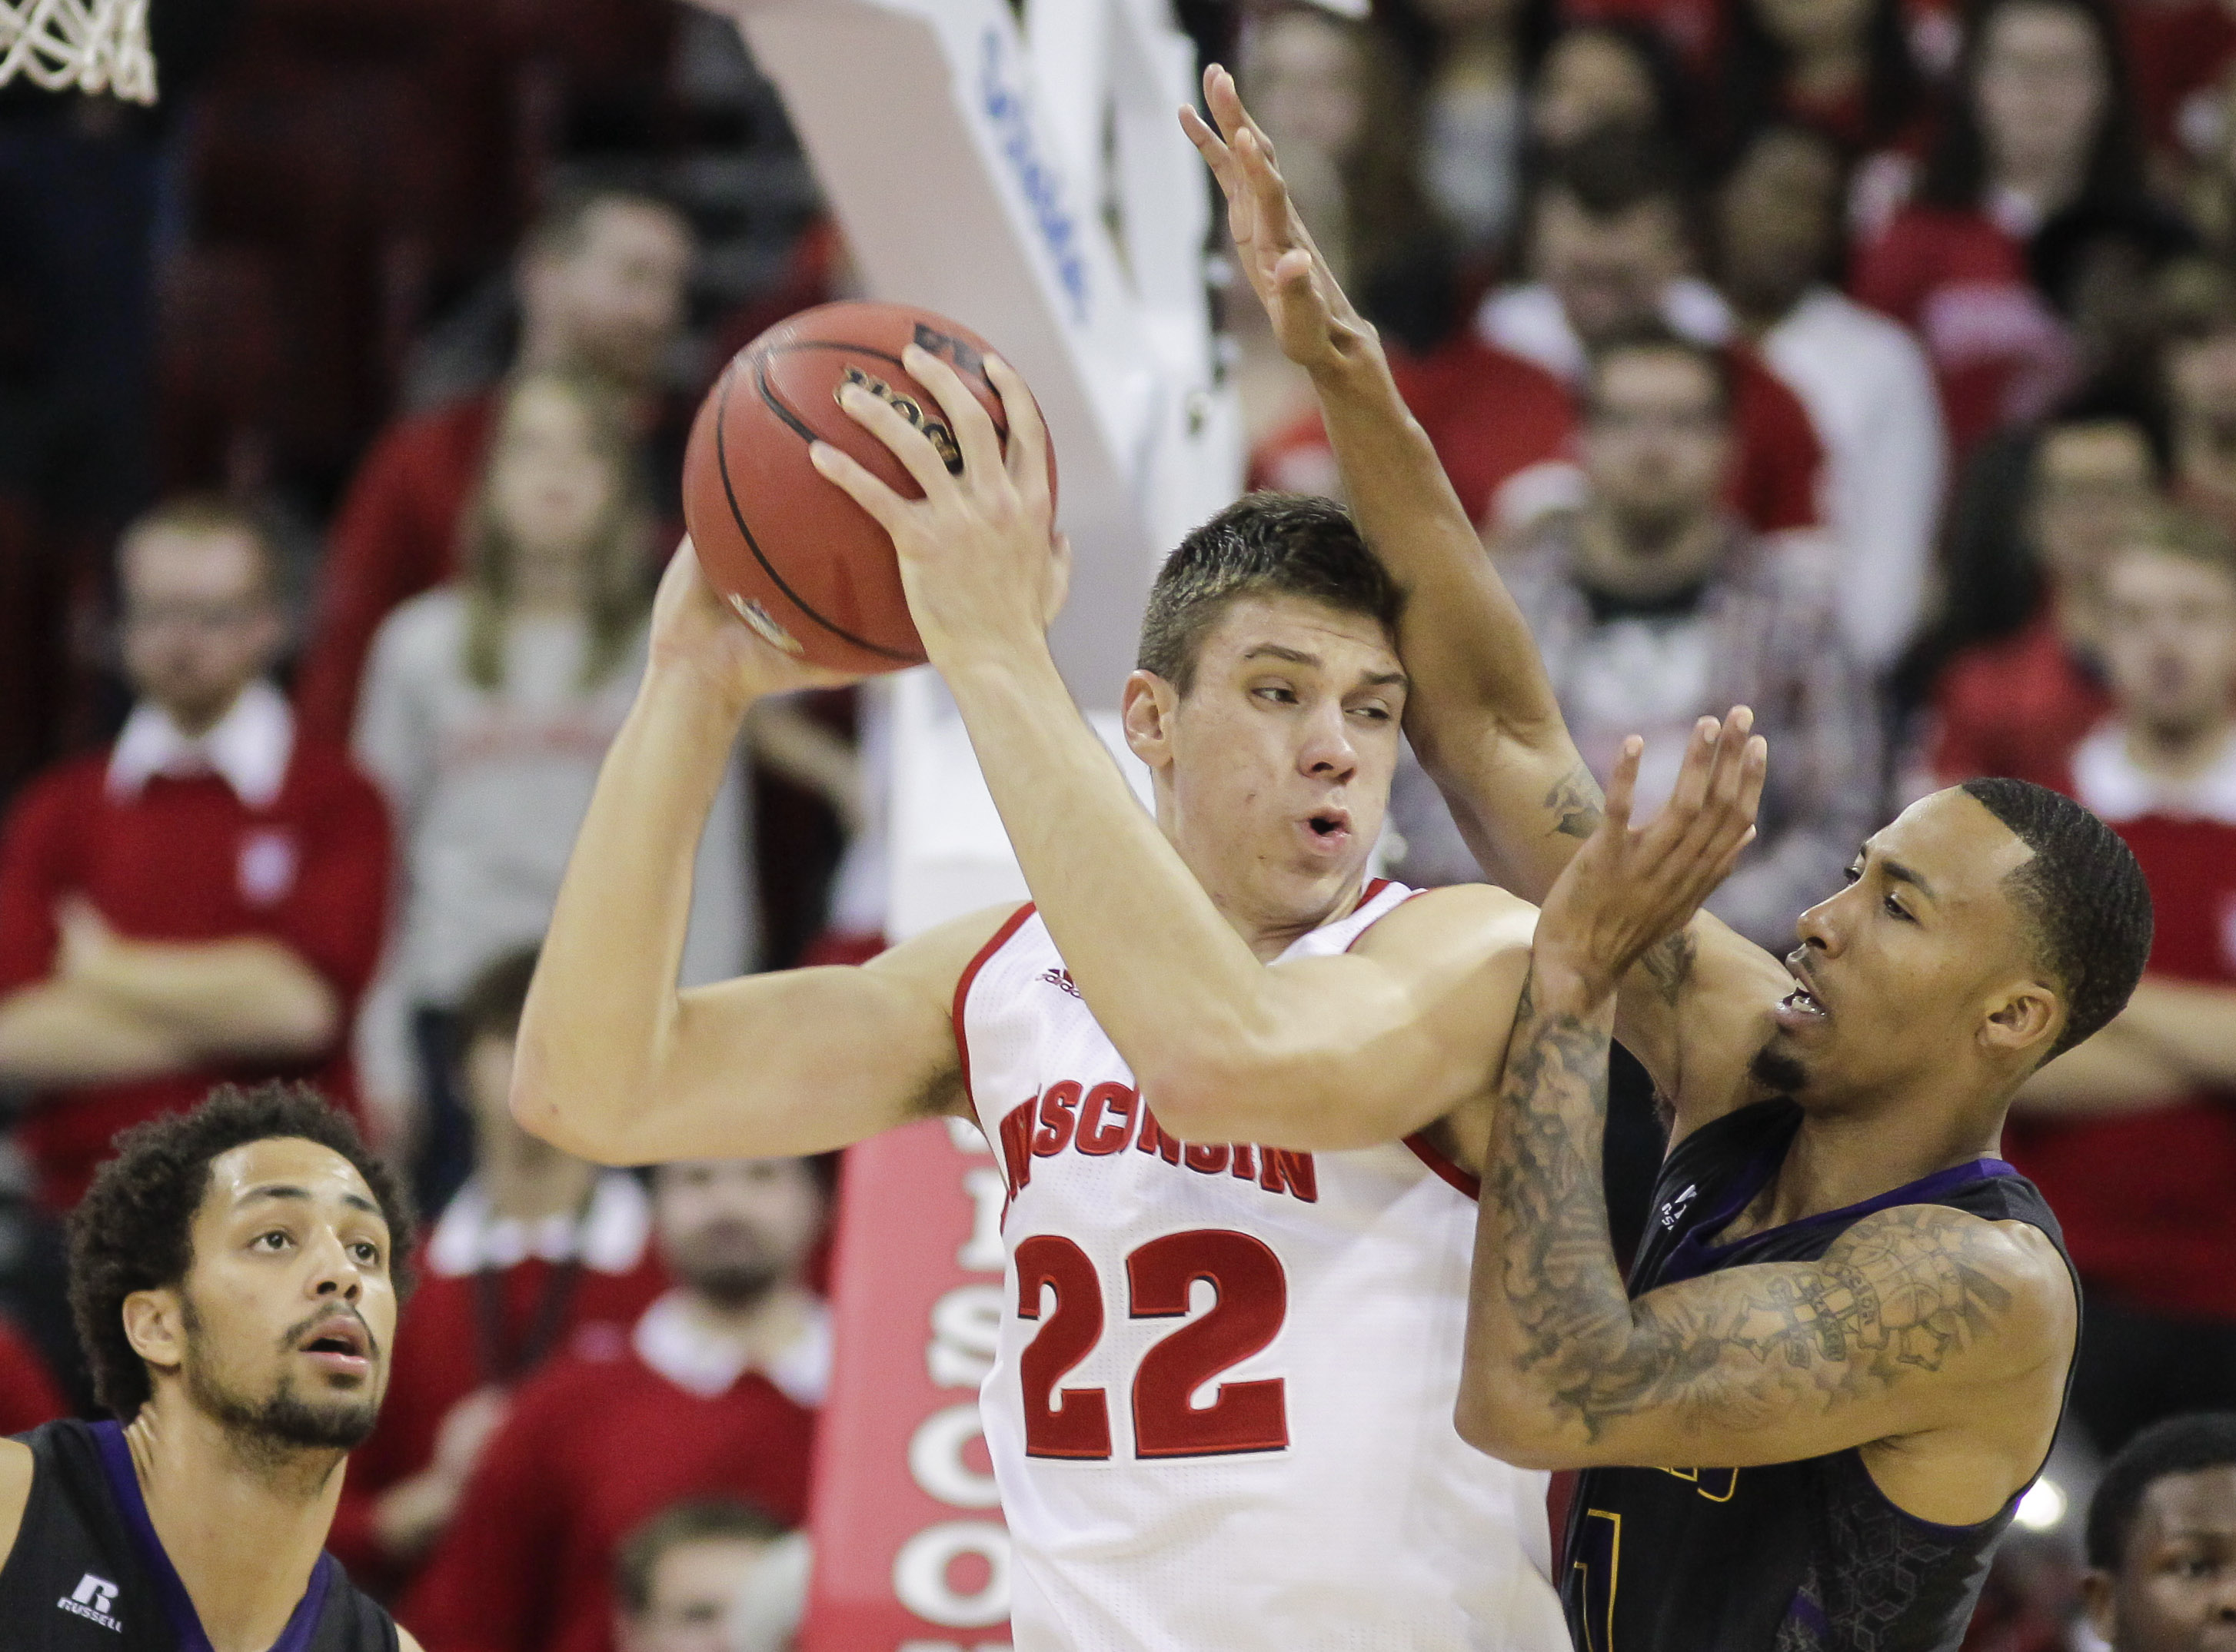 Wisconsin's Ethan Happ (22) keeps the ball from Prairie View A&M's Jayrn Johnson, right, during the first half of an NCAA college basketball game Wednesday Nov. 25, 2015, in Madison, Wis. (AP Photo/Andy Manis)